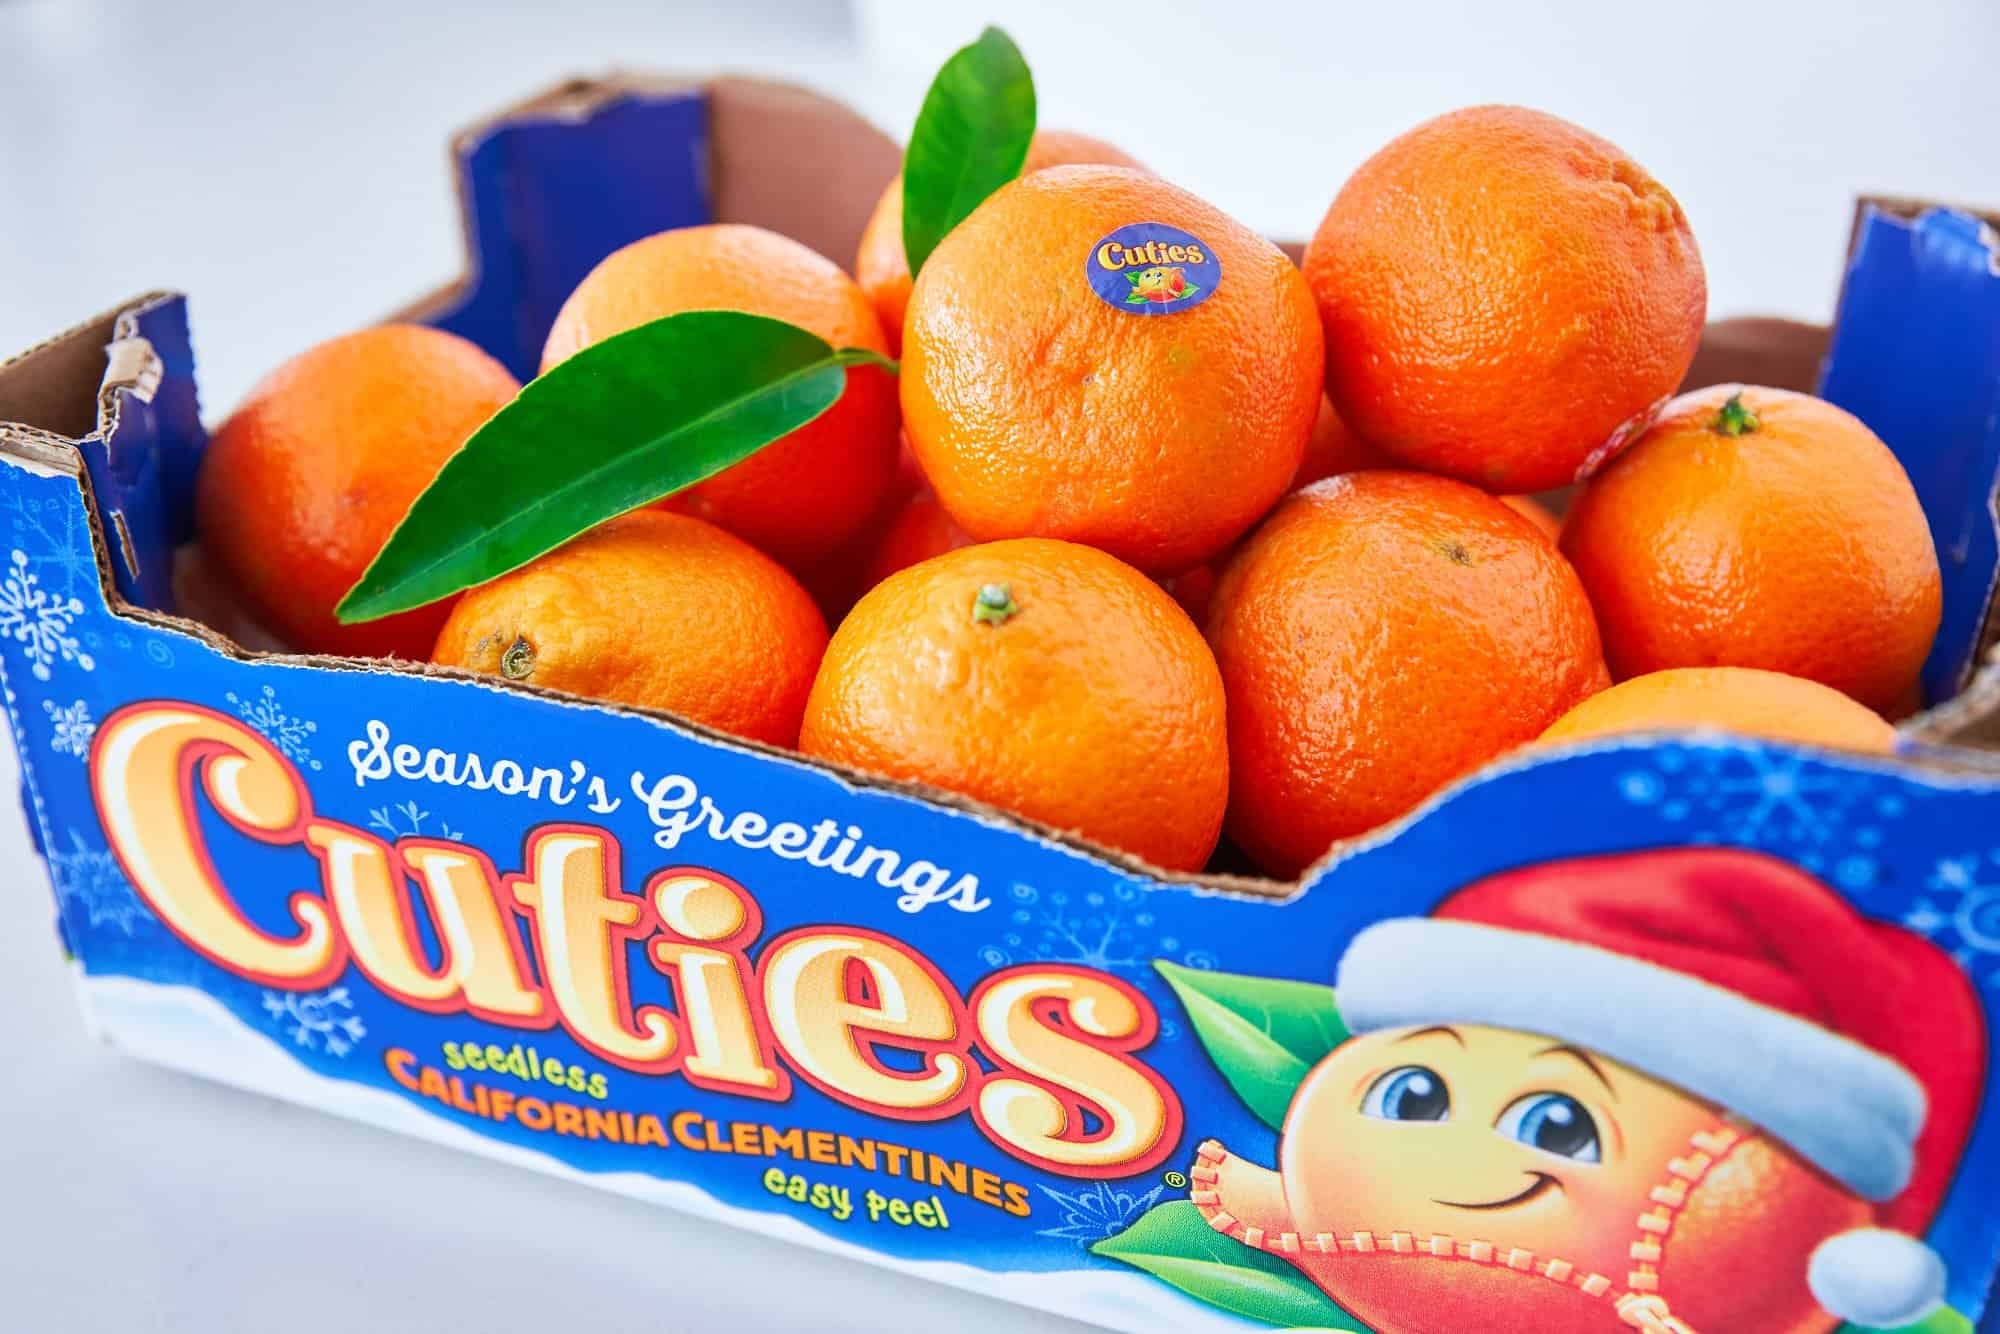 A box of Cuties Clementines.